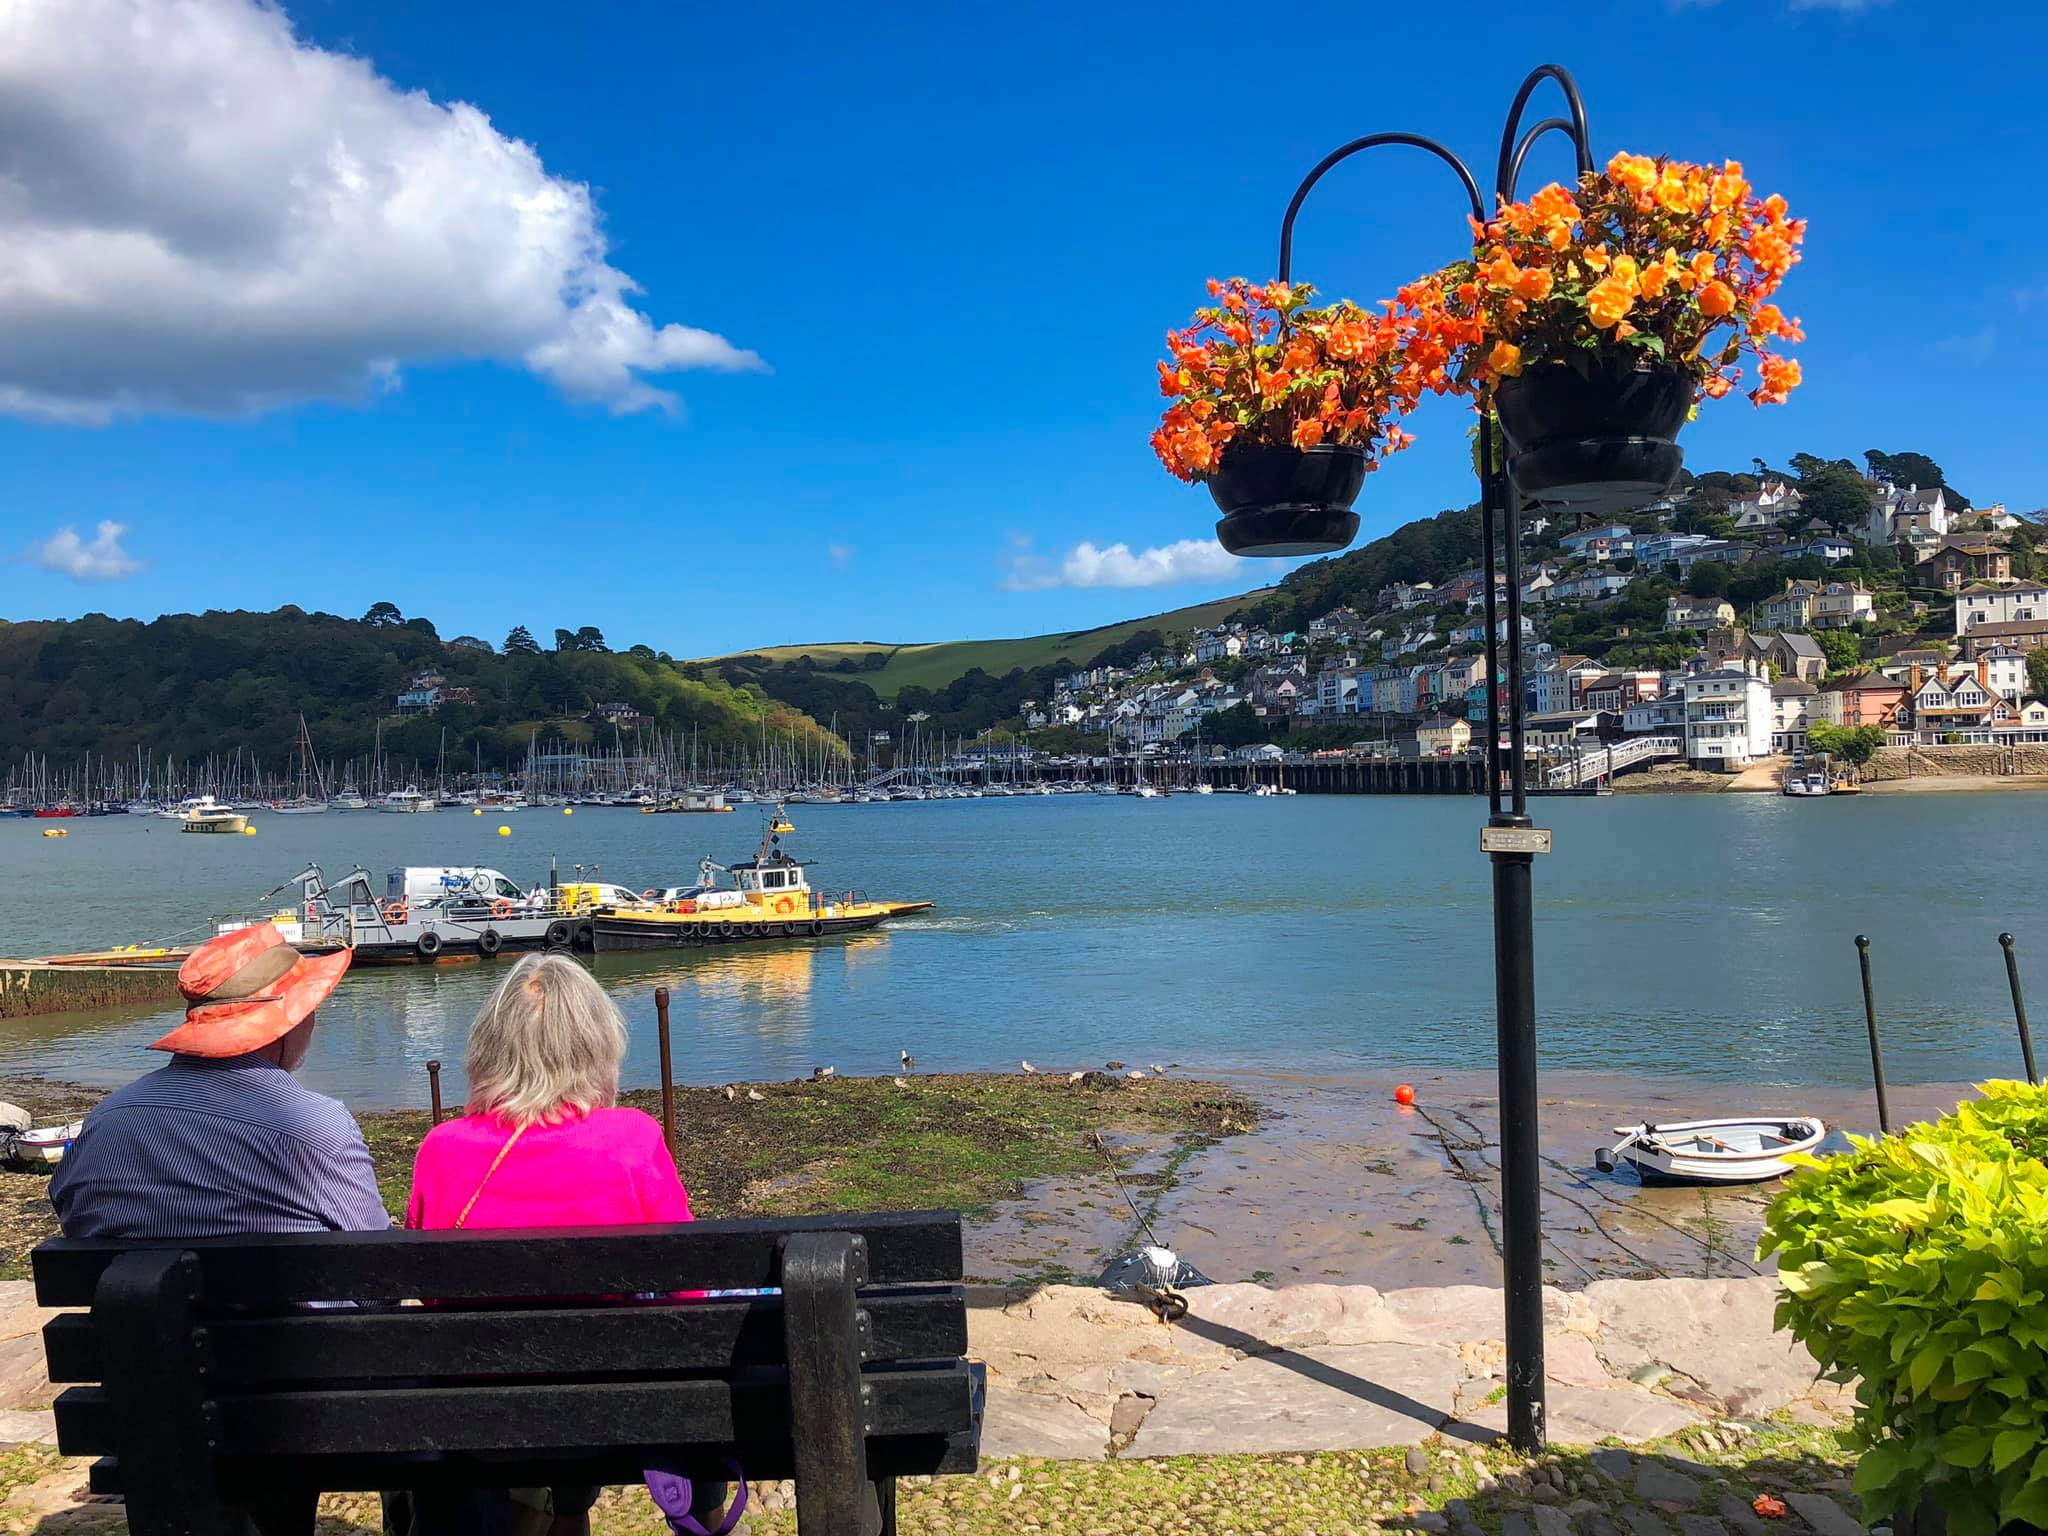 Couple on bench at Bayards Cove